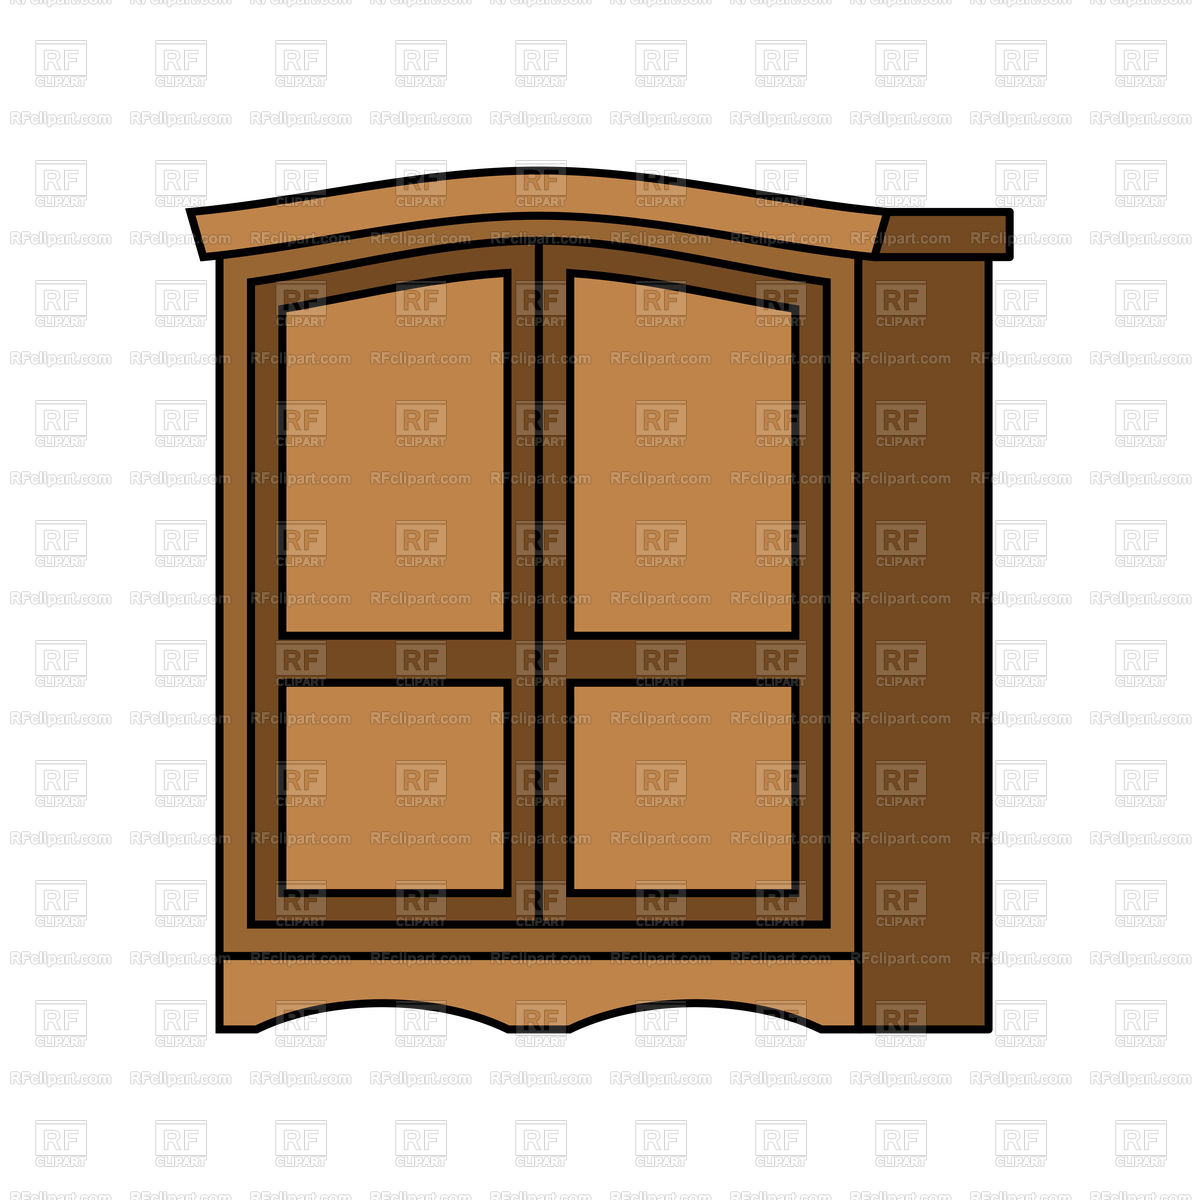 wardrobe clipart at getdrawings com free for personal use wardrobe rh getdrawings com closet clipart png closet clipart free